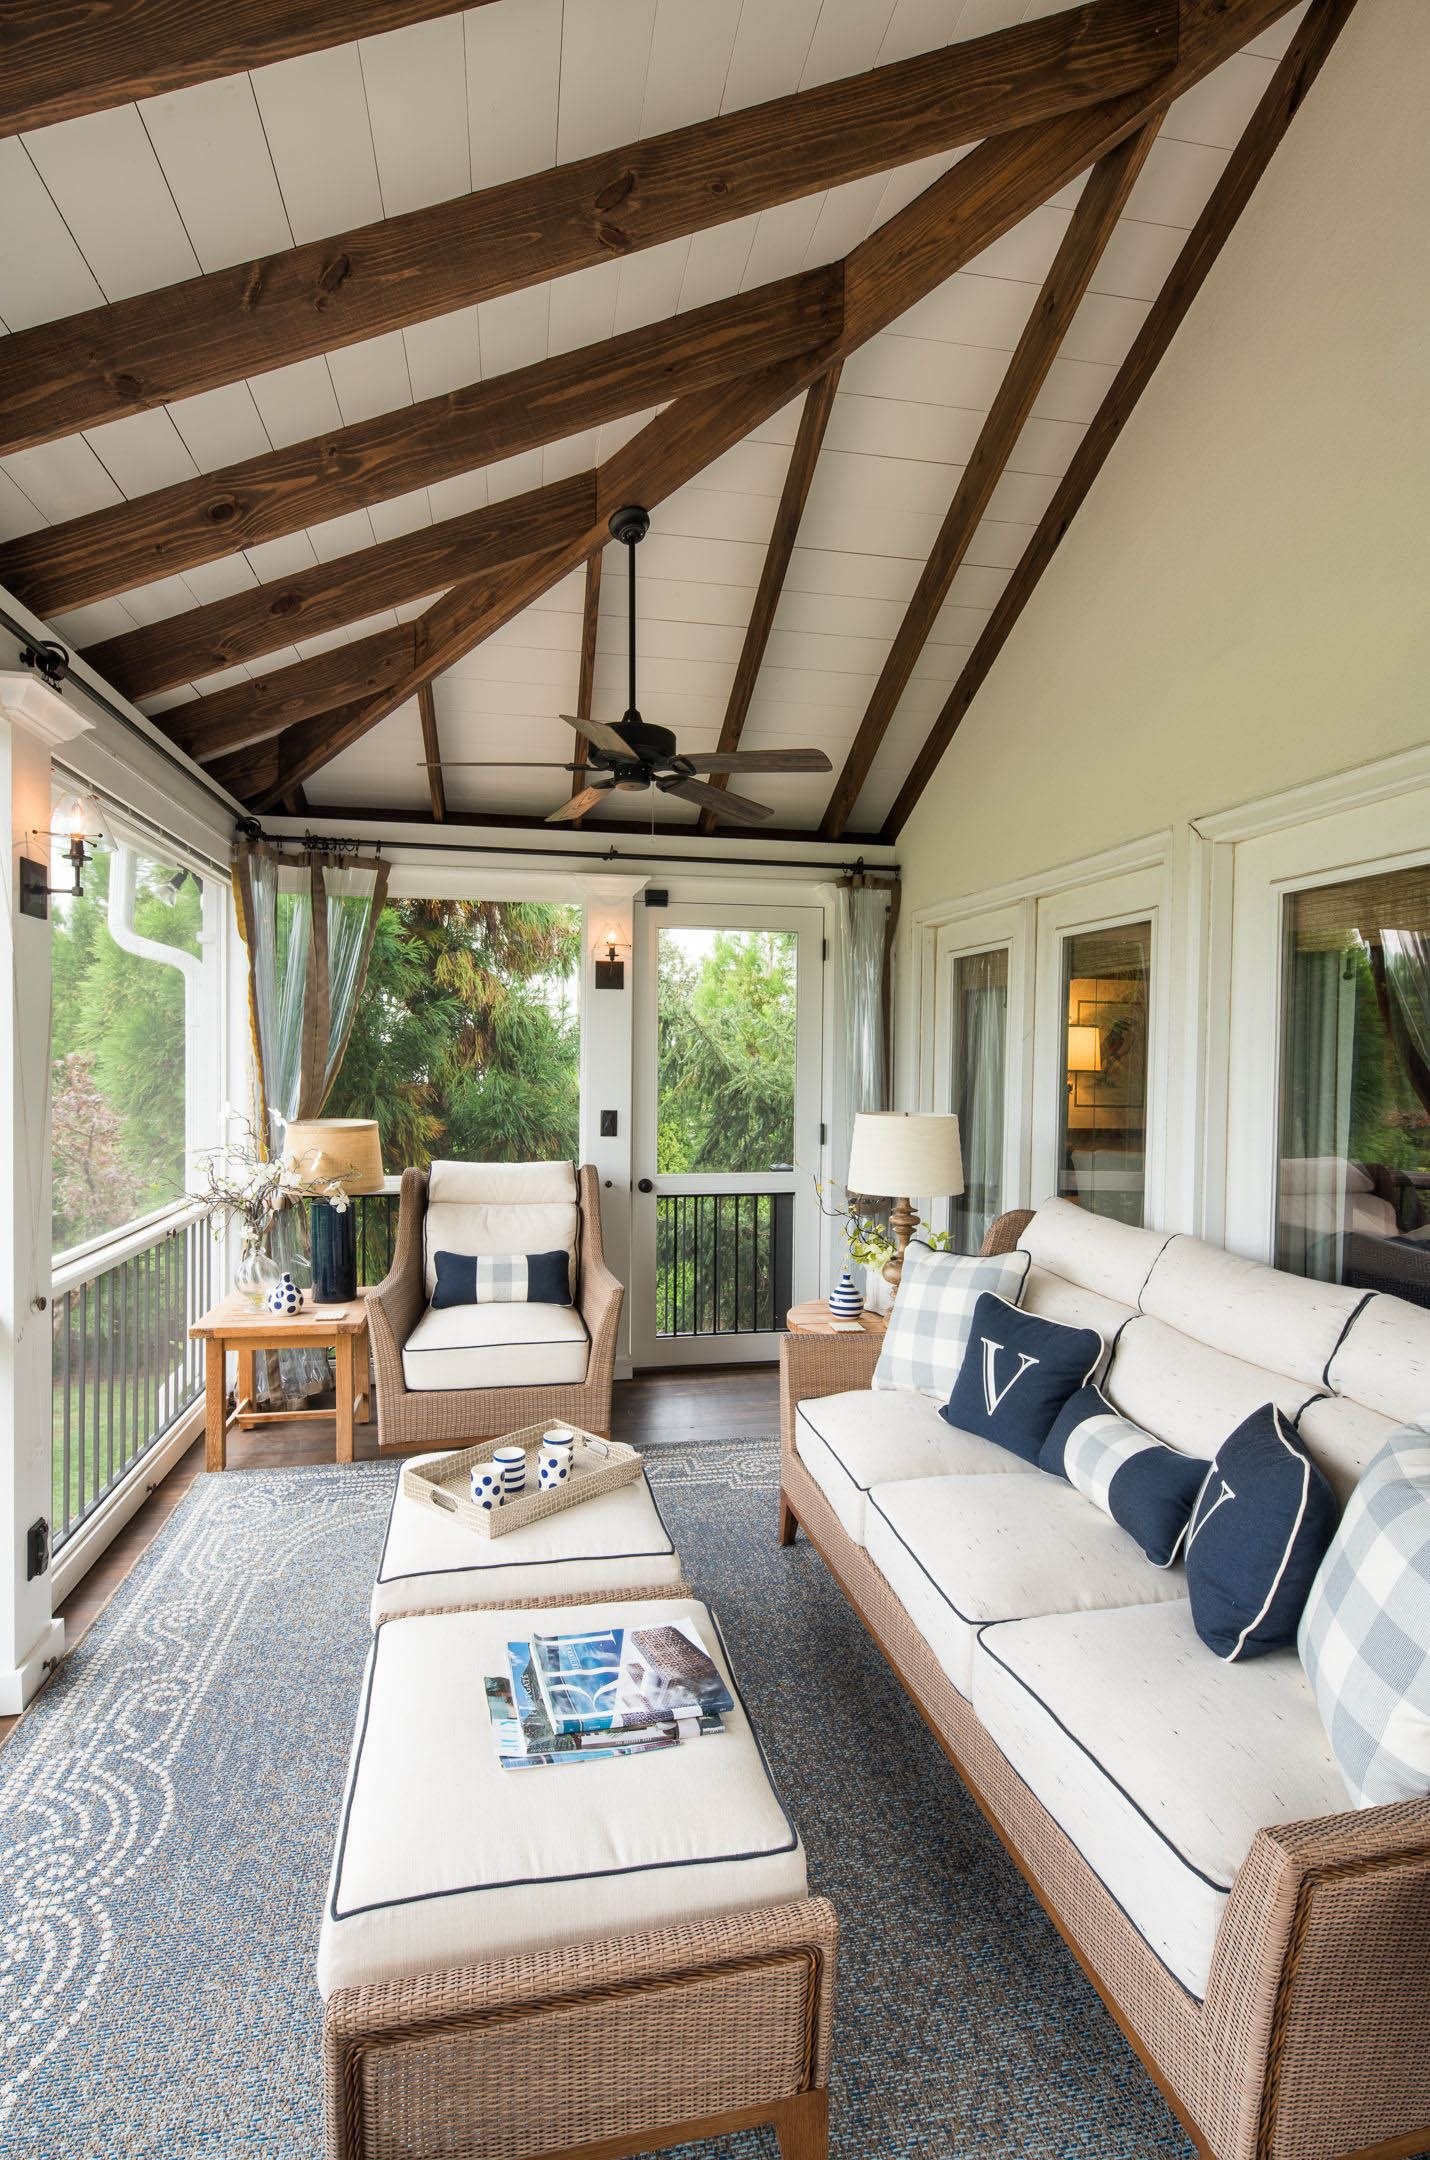 Photos Of Screen Porches  Porch design, Screened porch designs